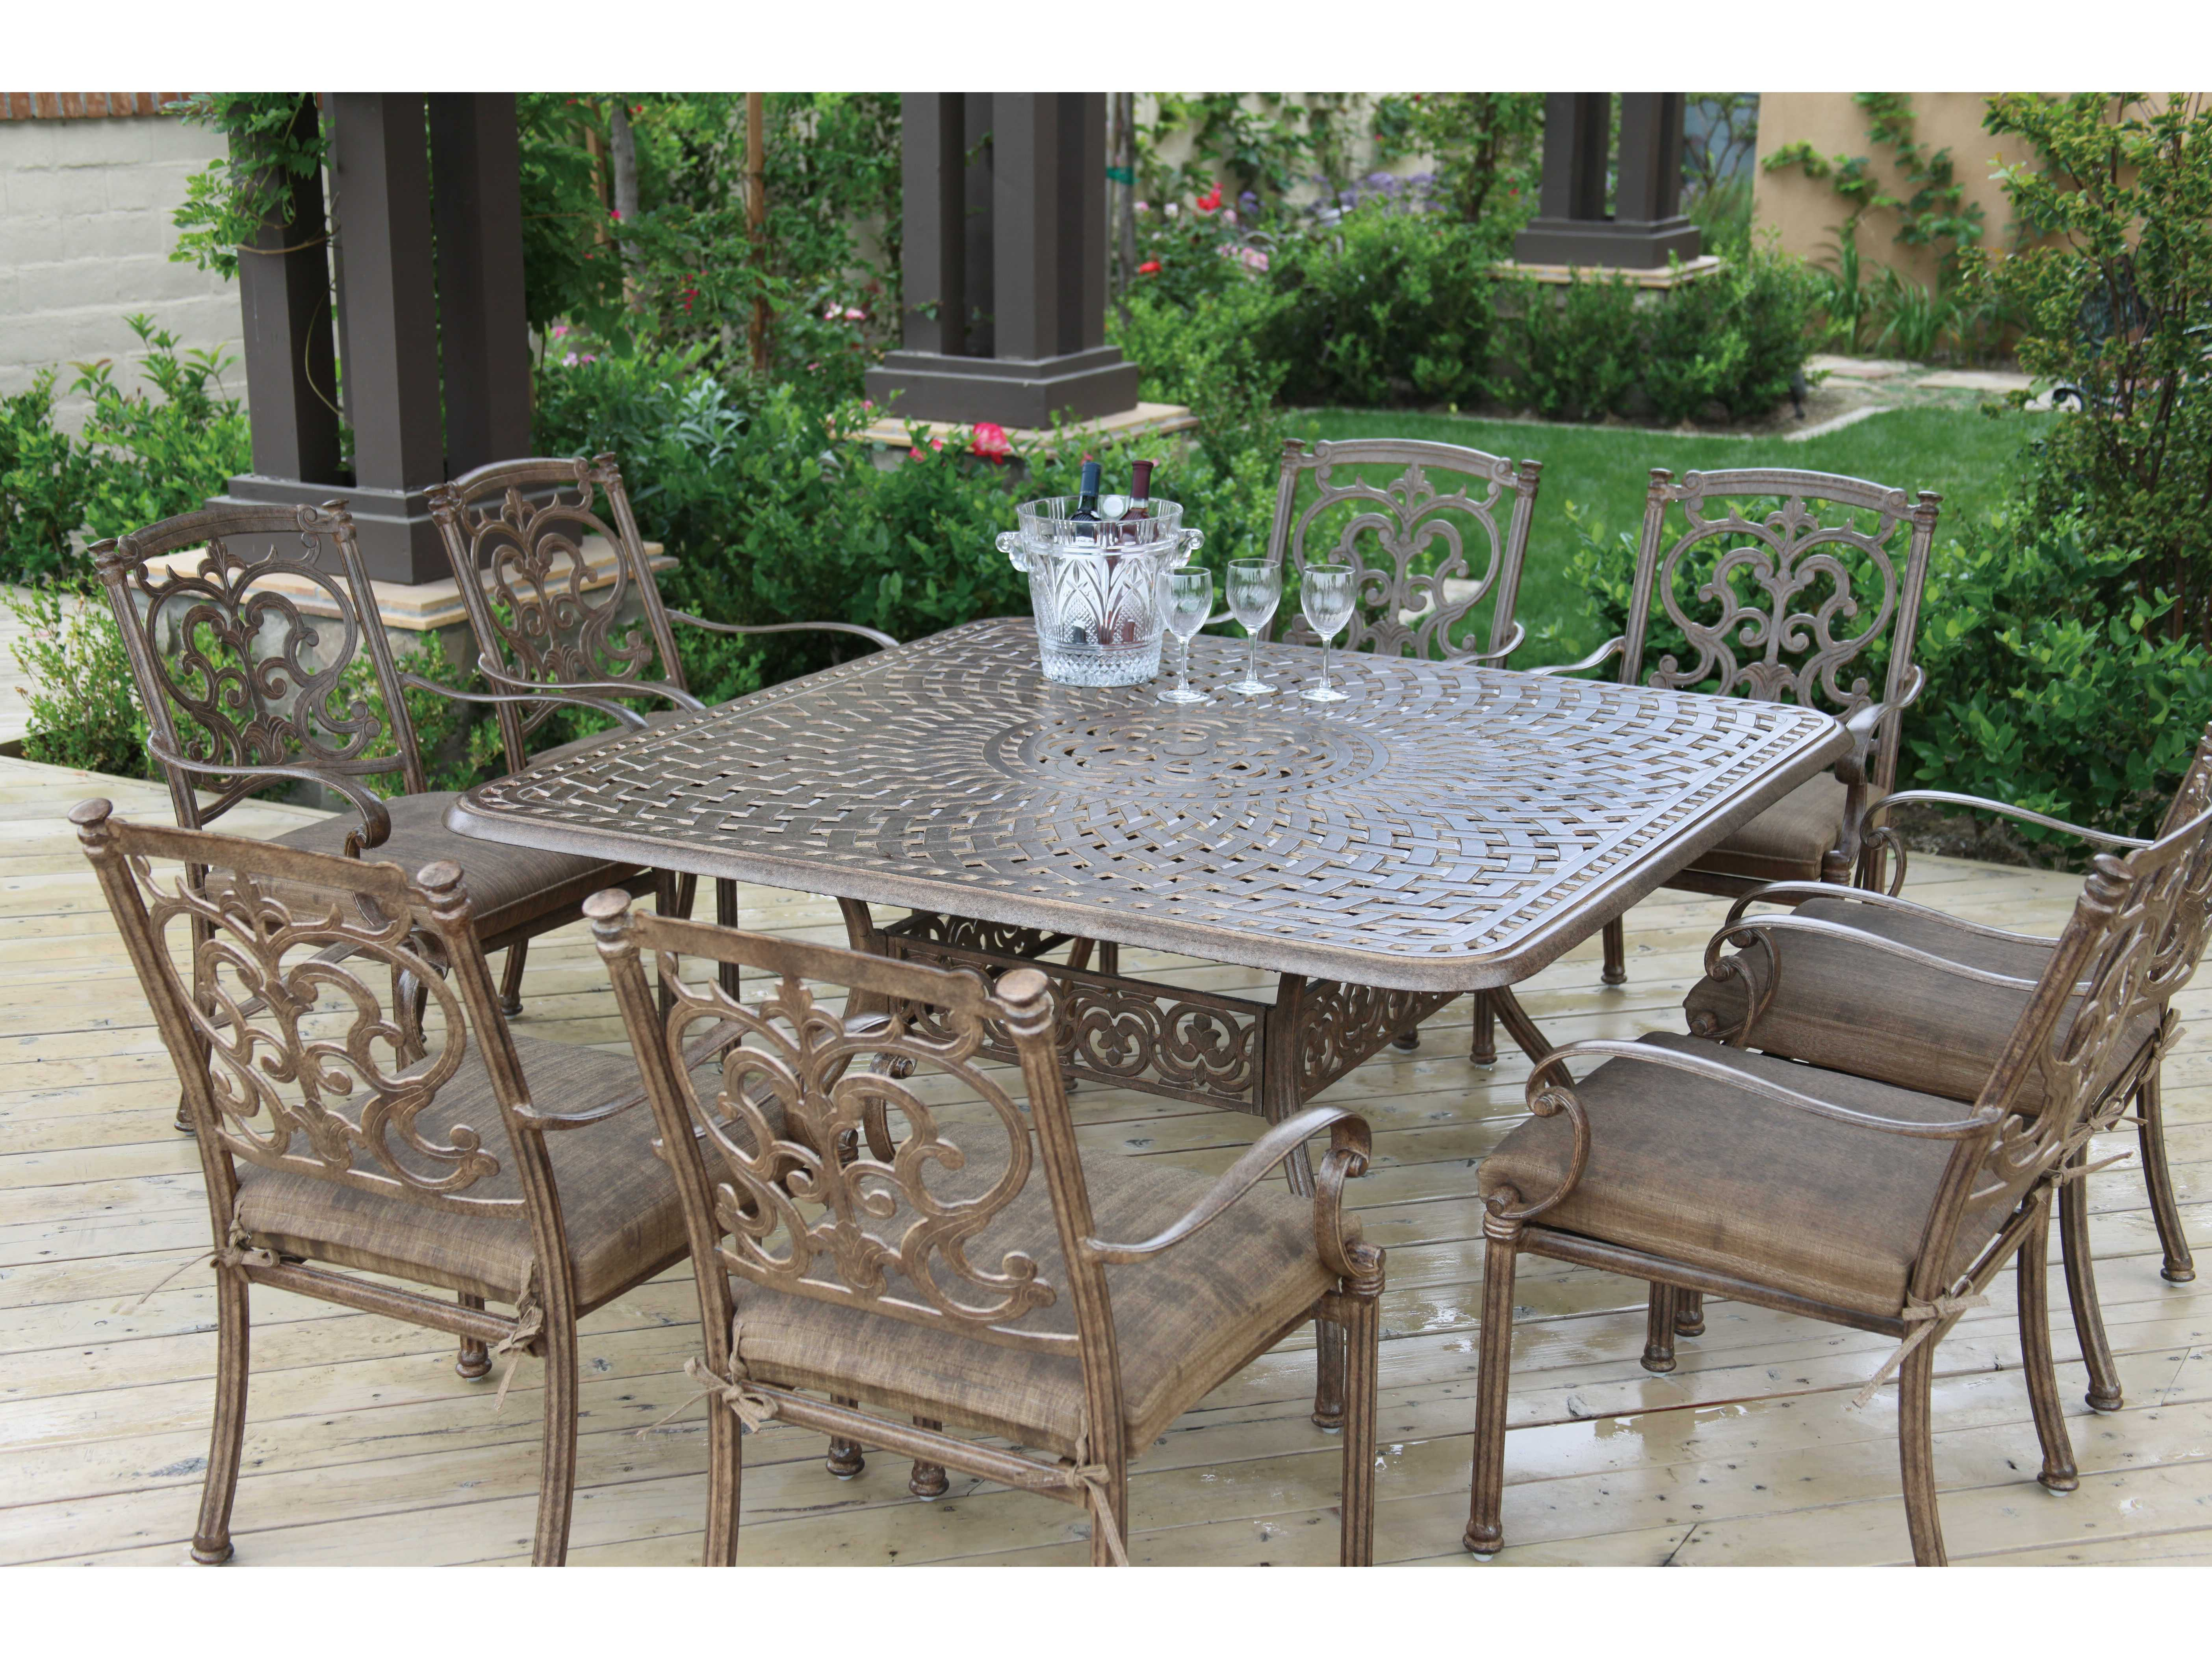 Patio Tables Dining: Darlee Outdoor Living Series 60 Cast Aluminum 60 Square